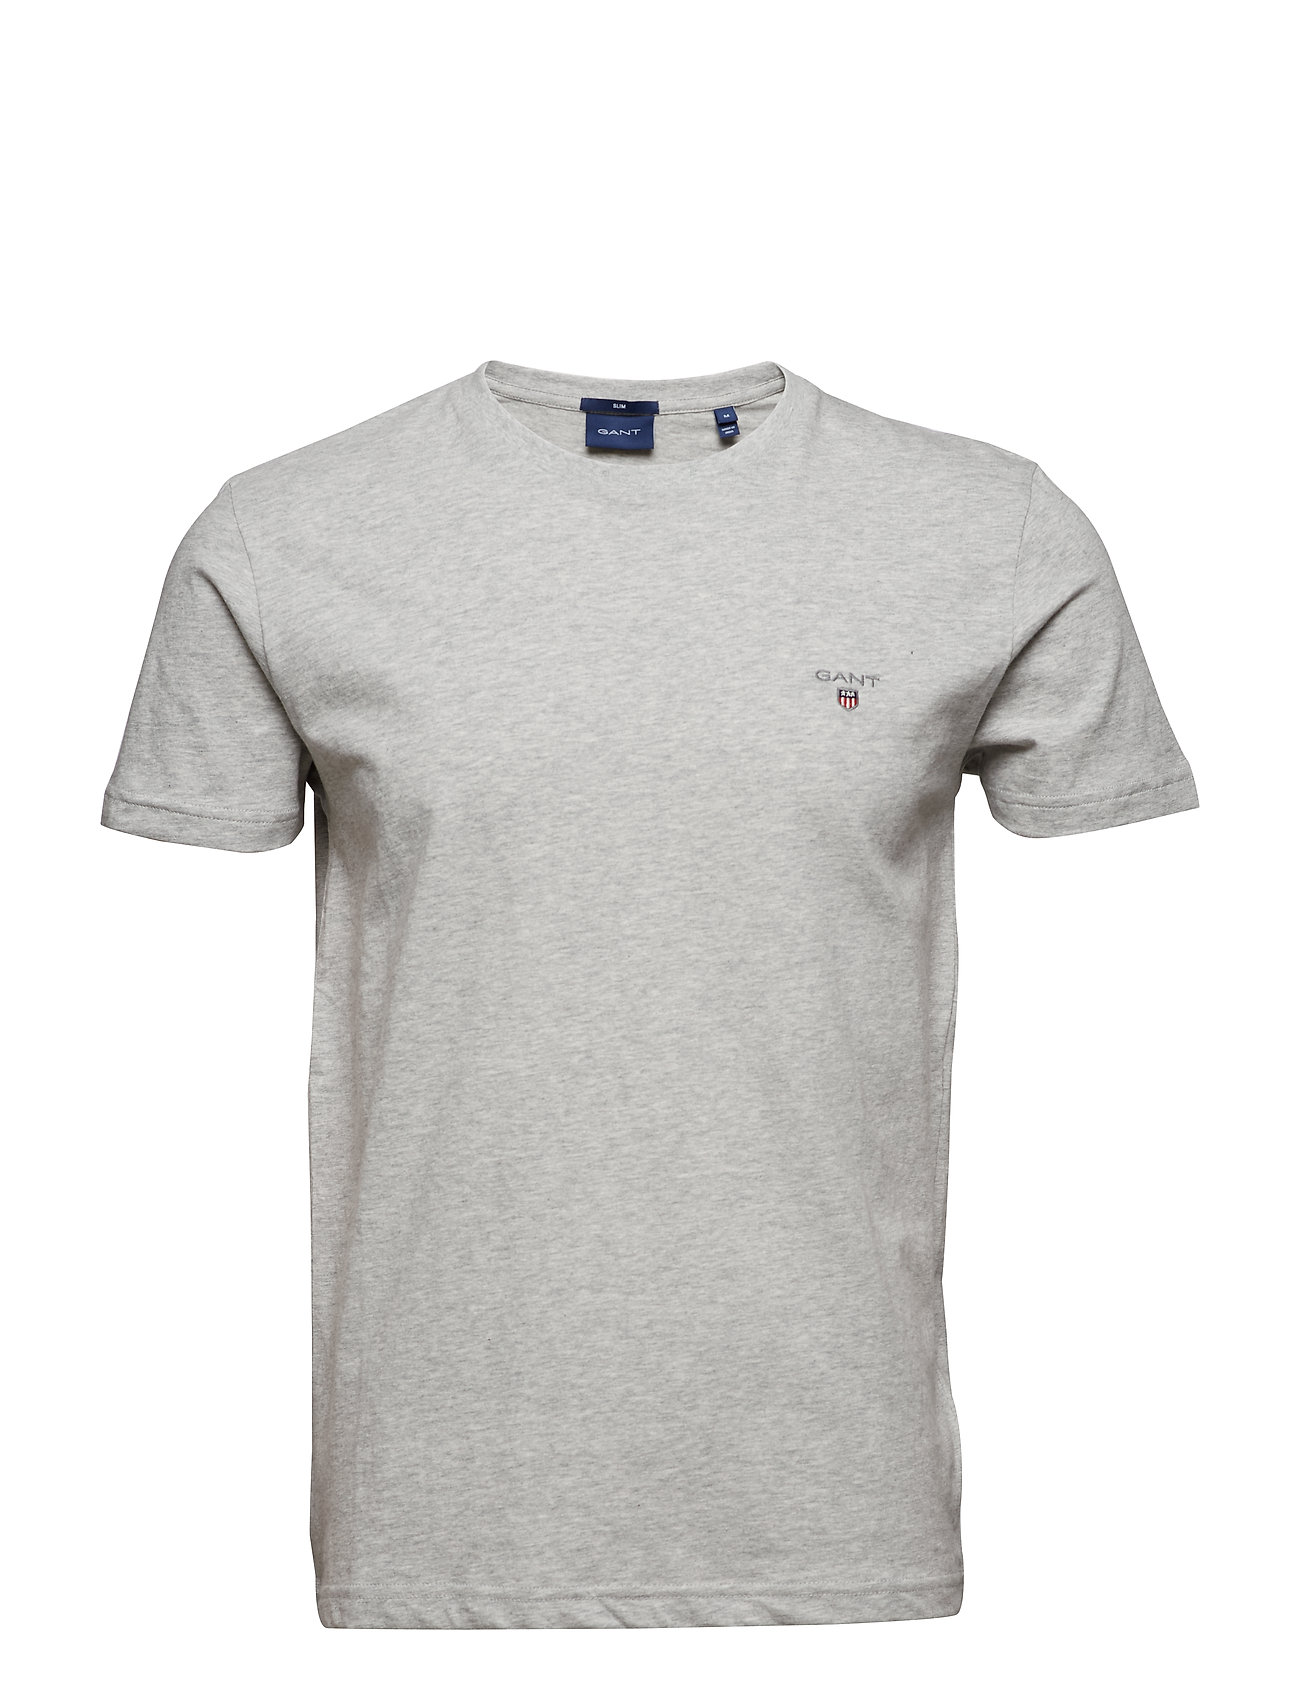 Gant ORIGINAL SLIM T-SHIRT - LIGHT GREY MELANGE